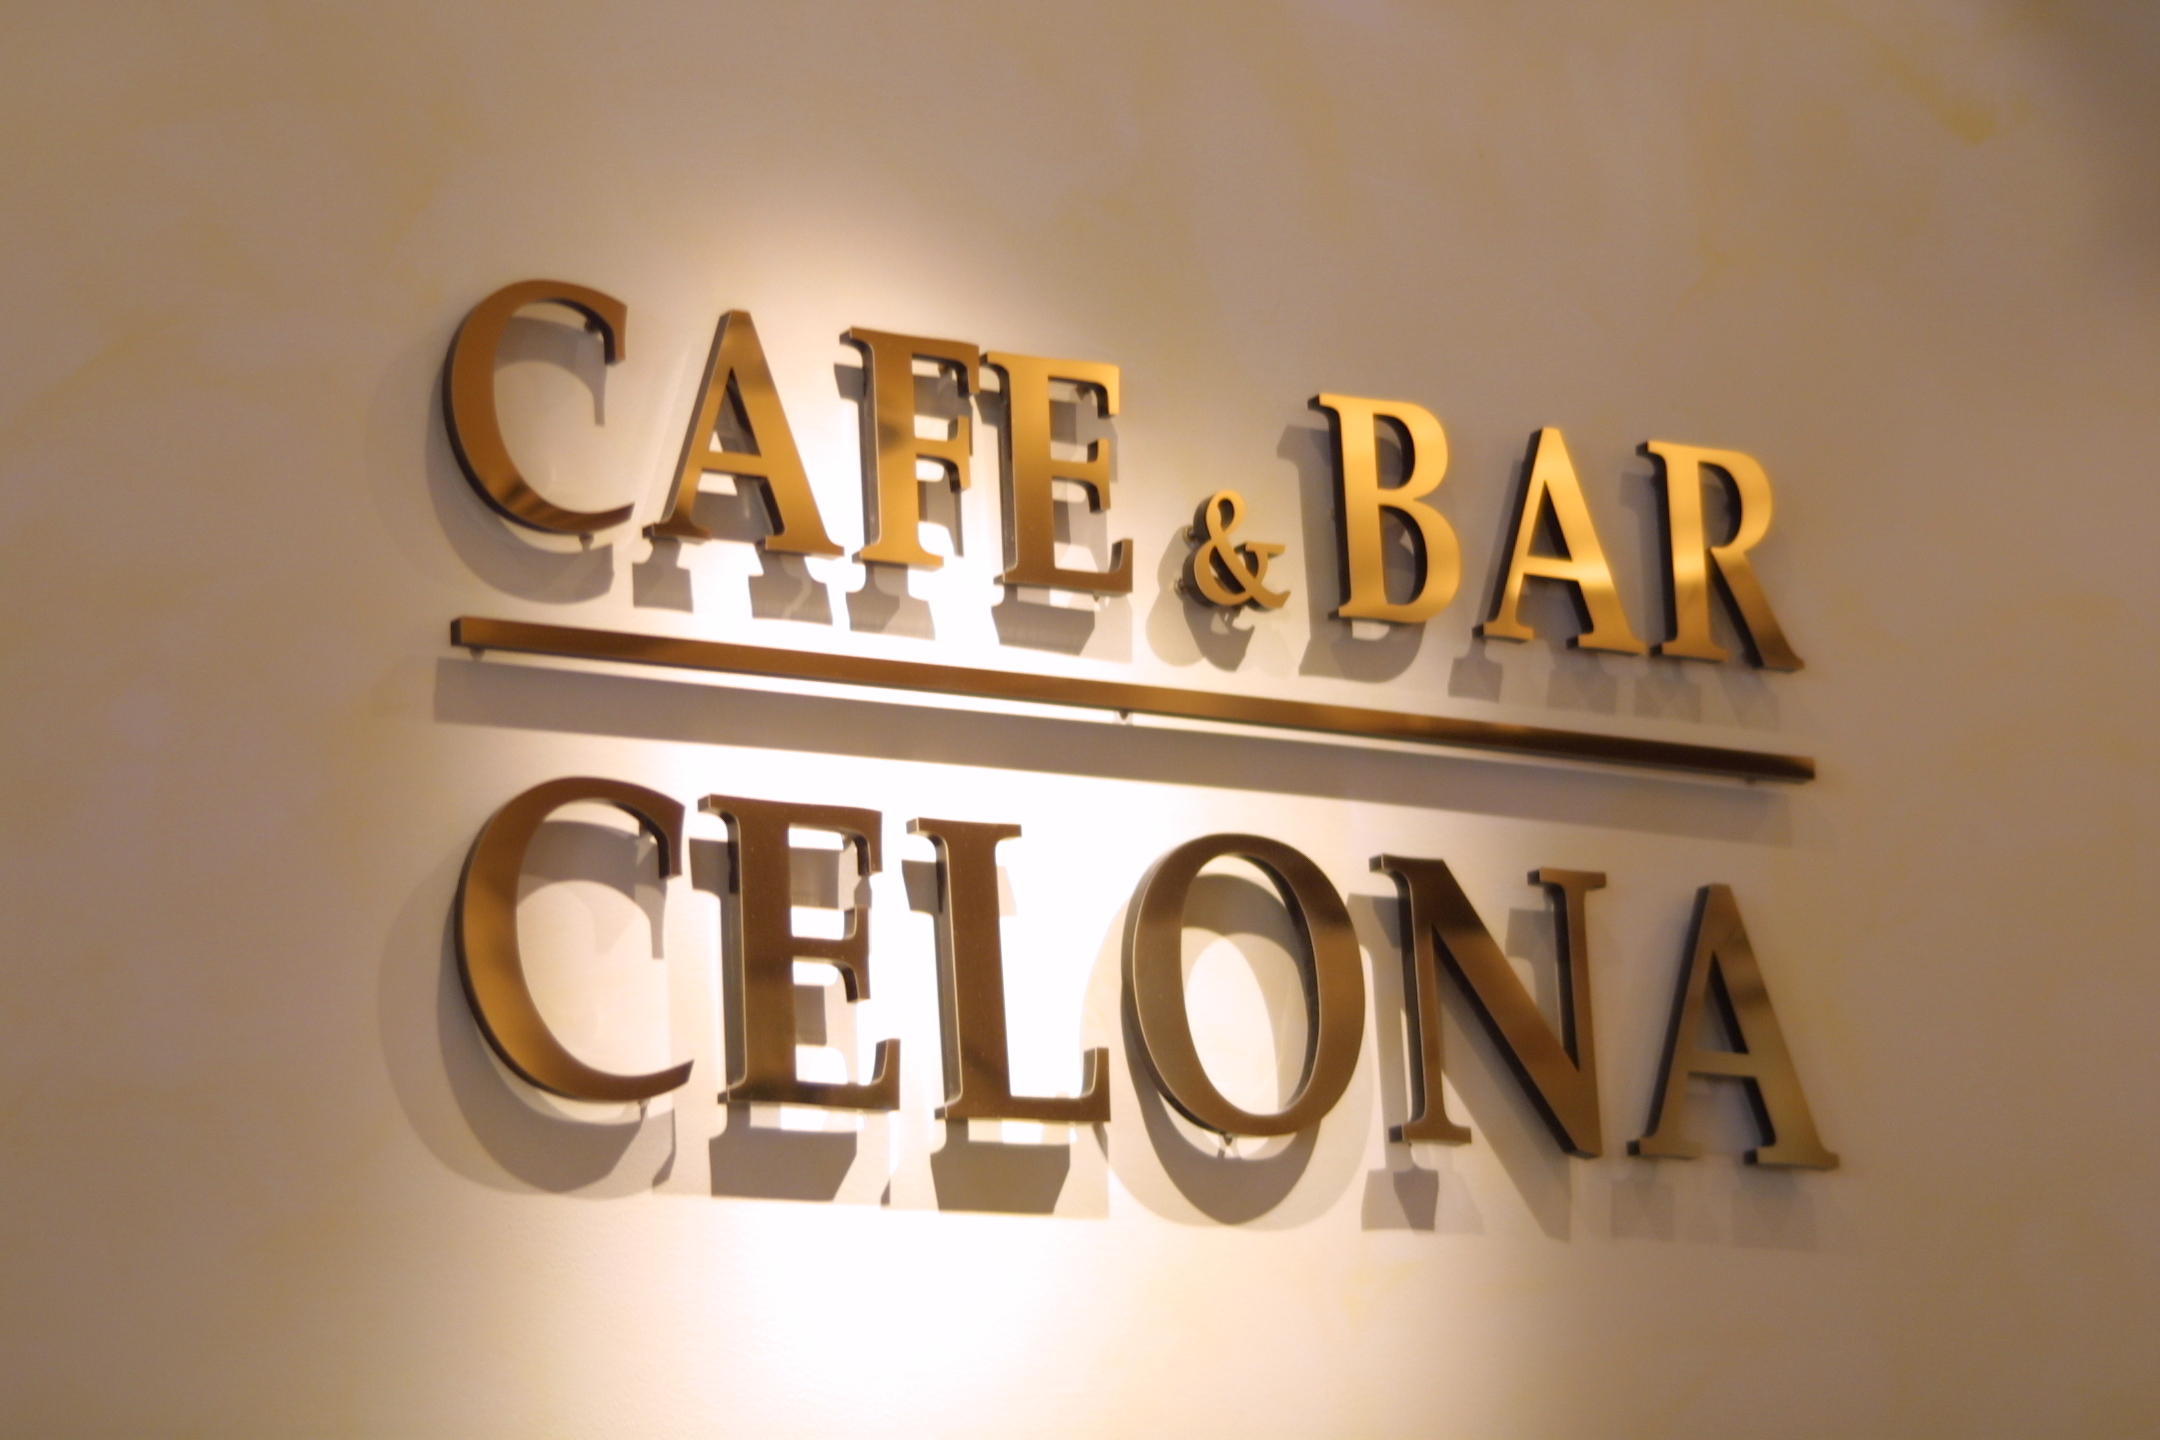 Cafe Bar Celona Bremen